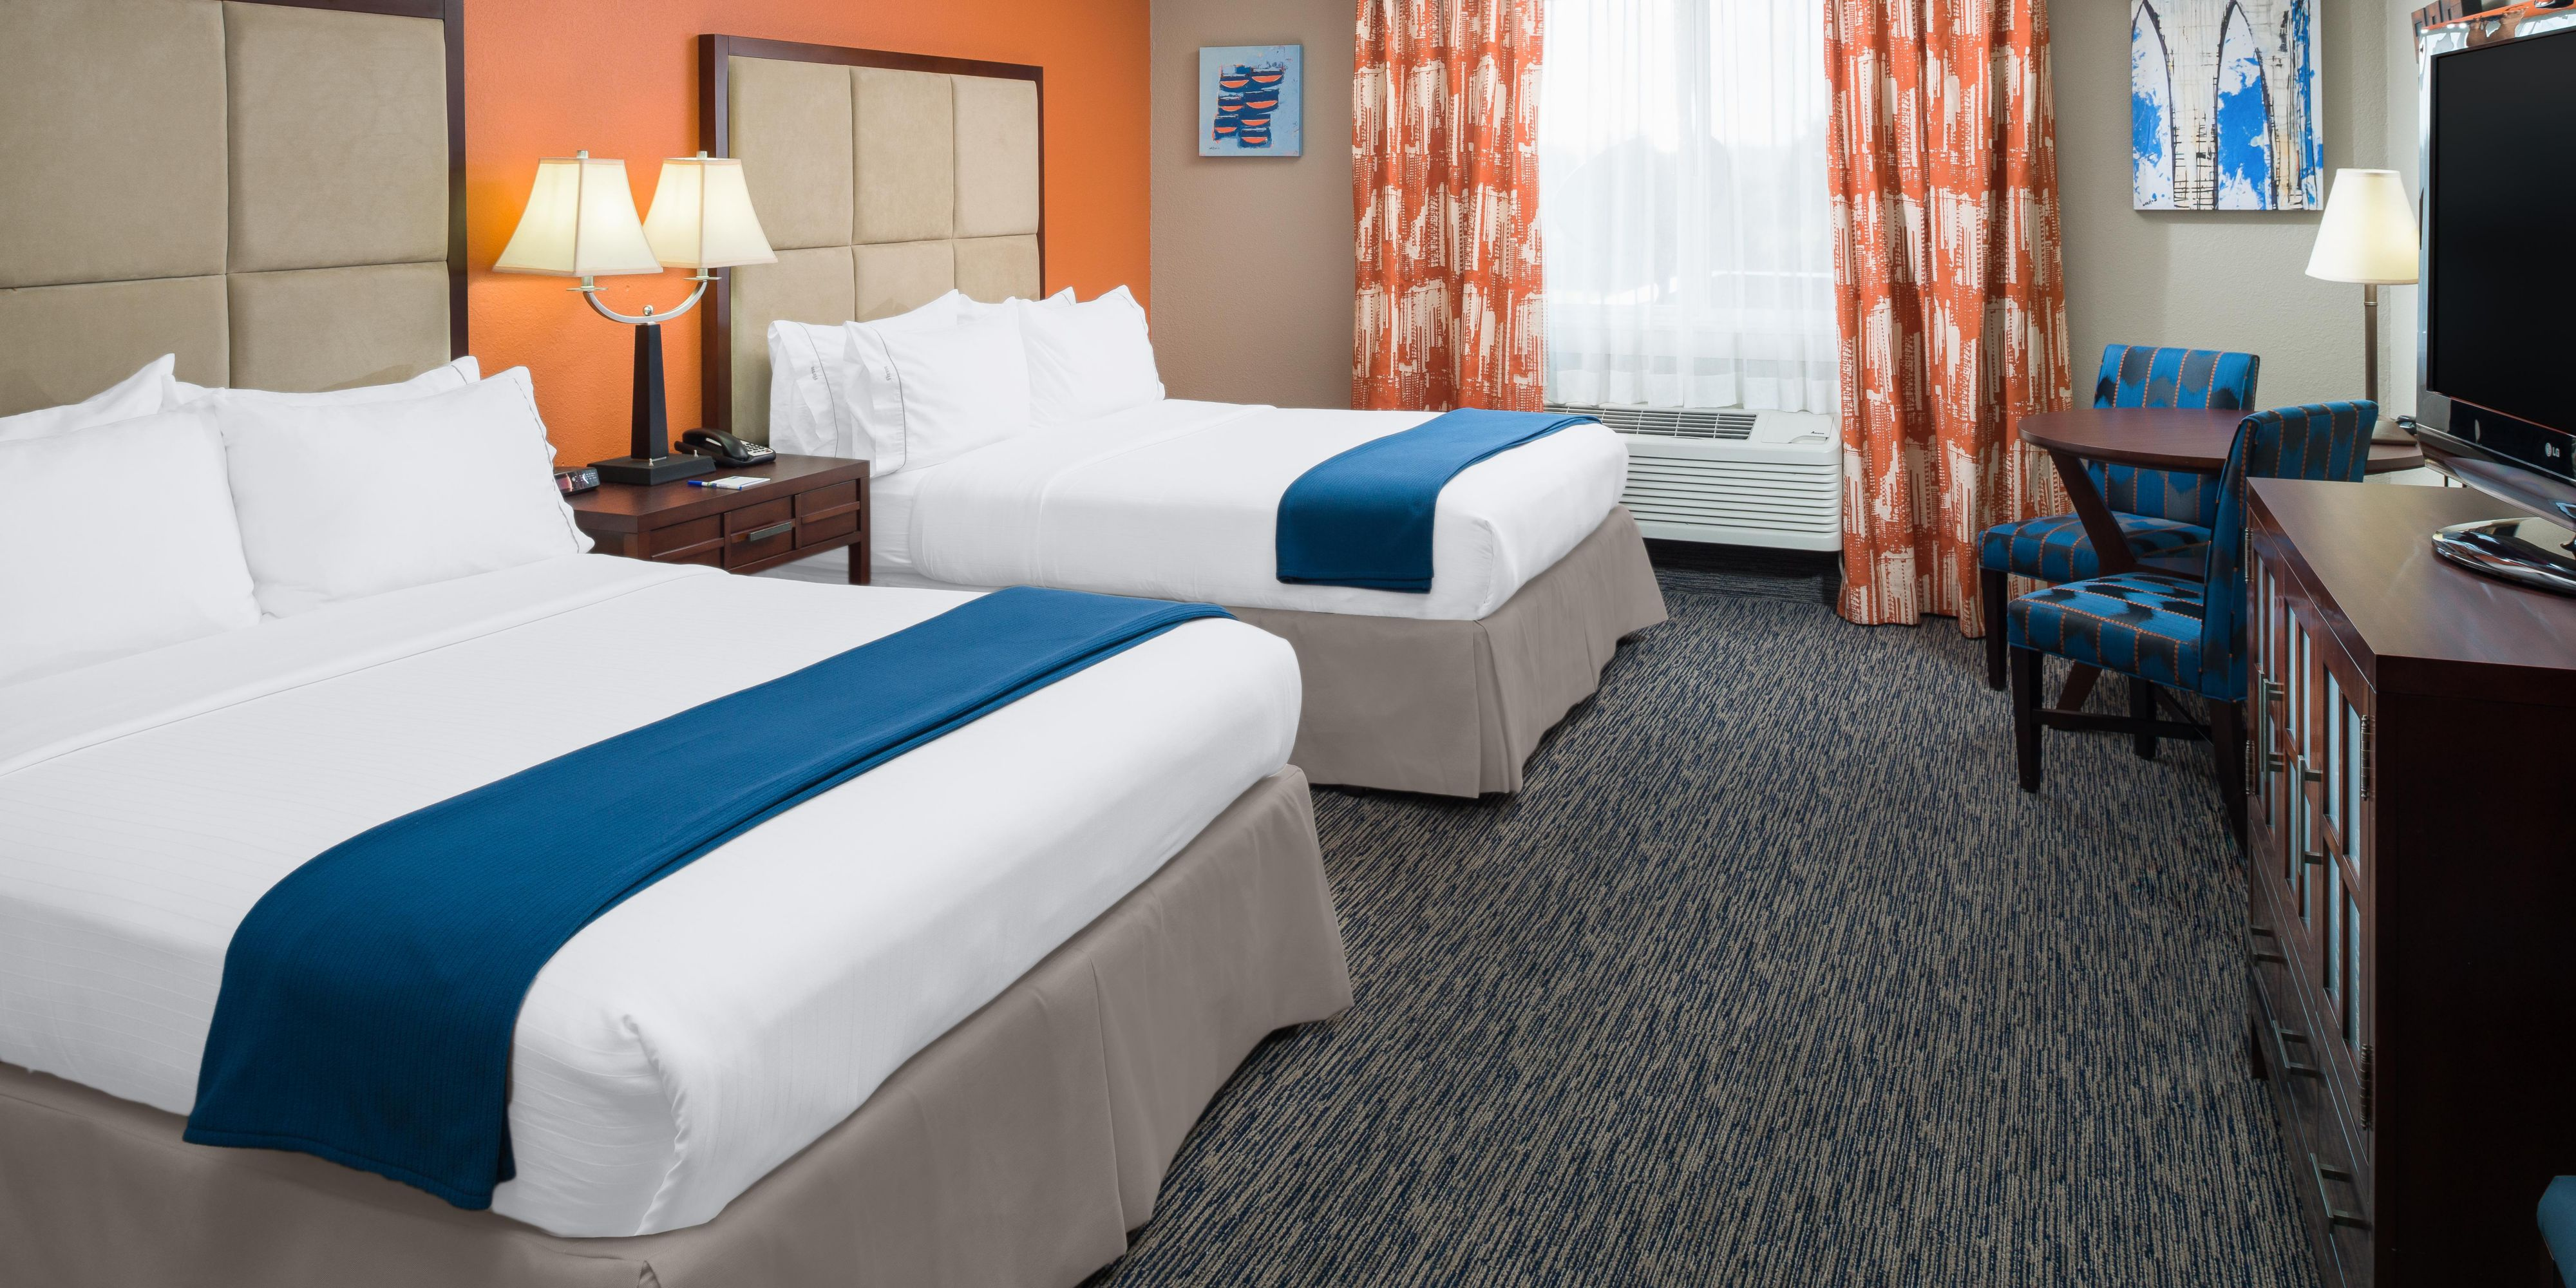 Holiday Inn Express & Suites Arcata Eureka Airport Area Hotel by IHG